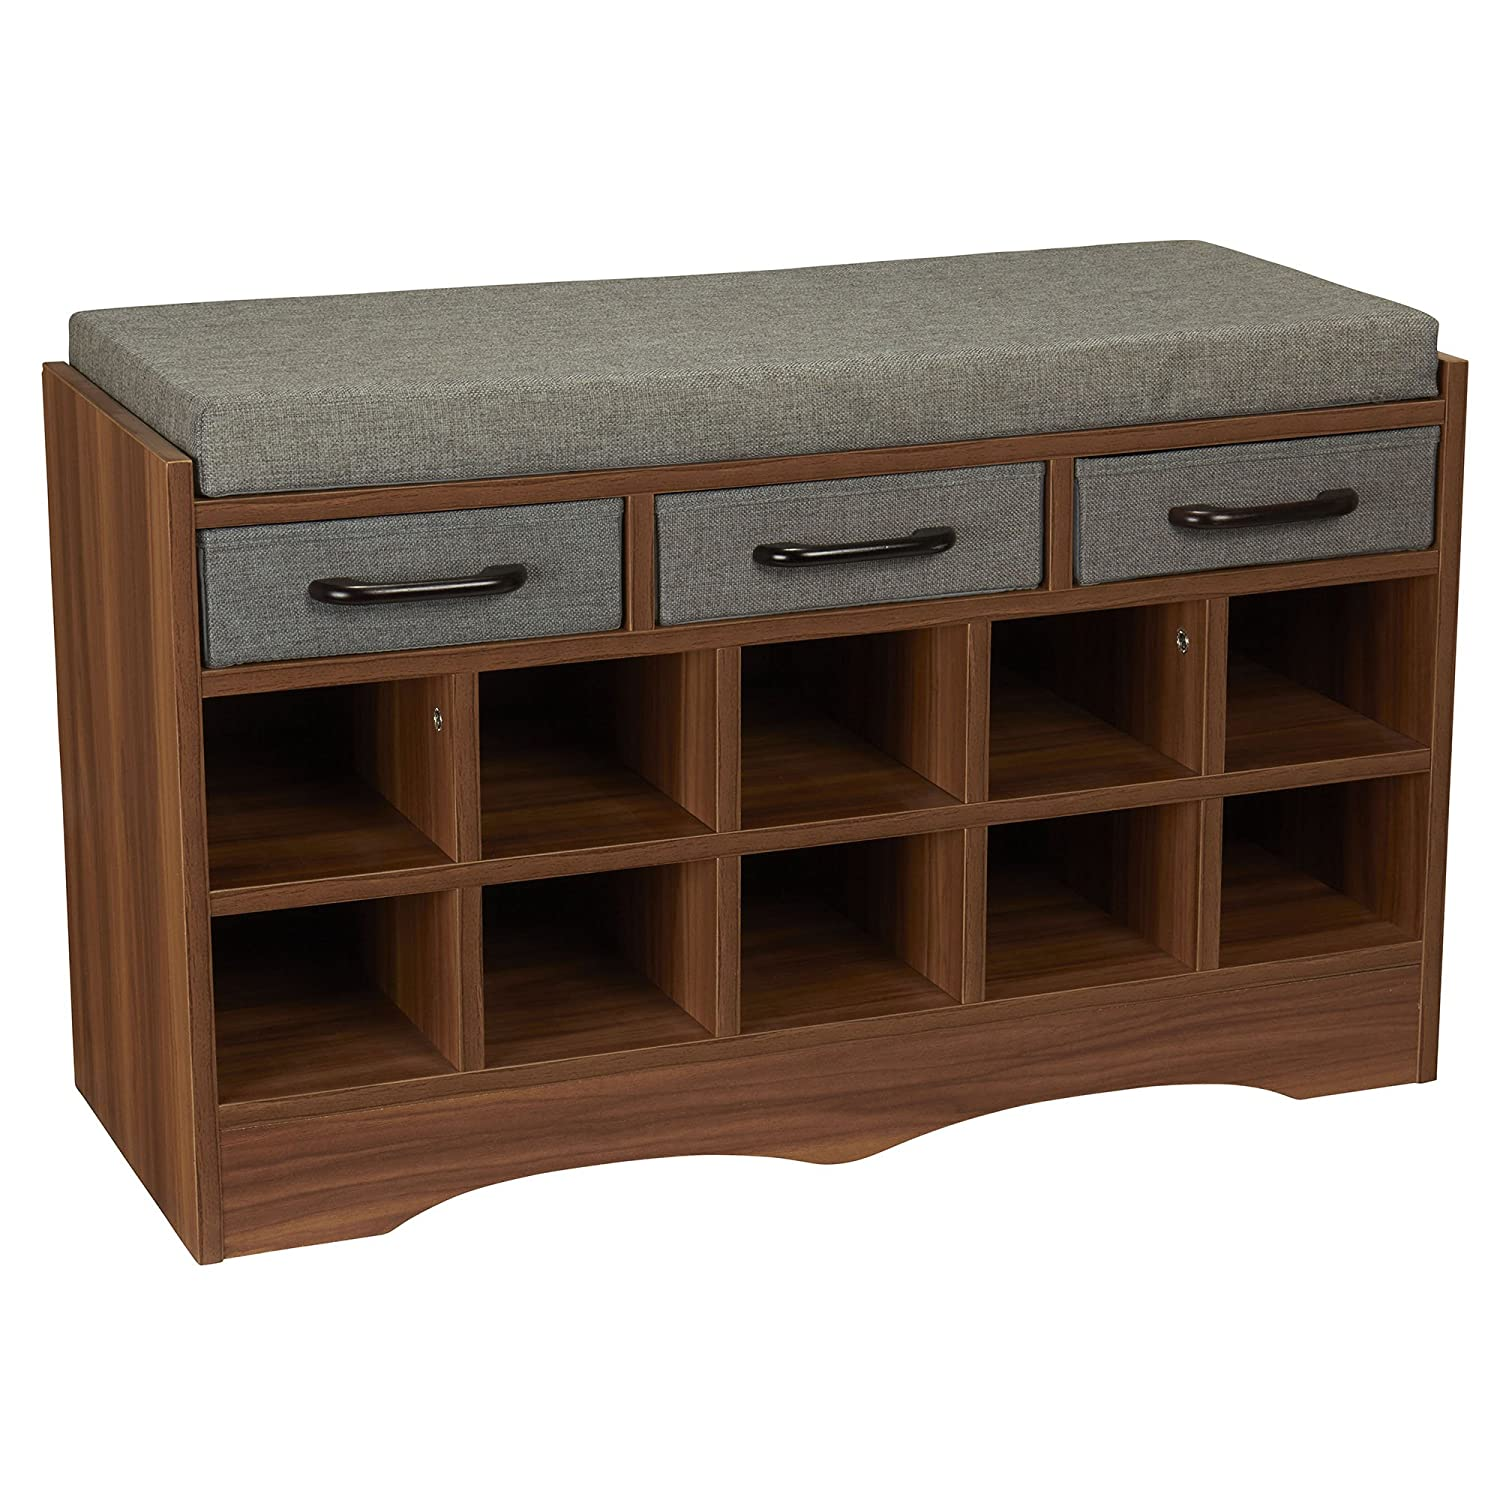 marmor trespass storage curtis bed bedroom amazon pulaski dining benches upholstered bench kitchen dp com